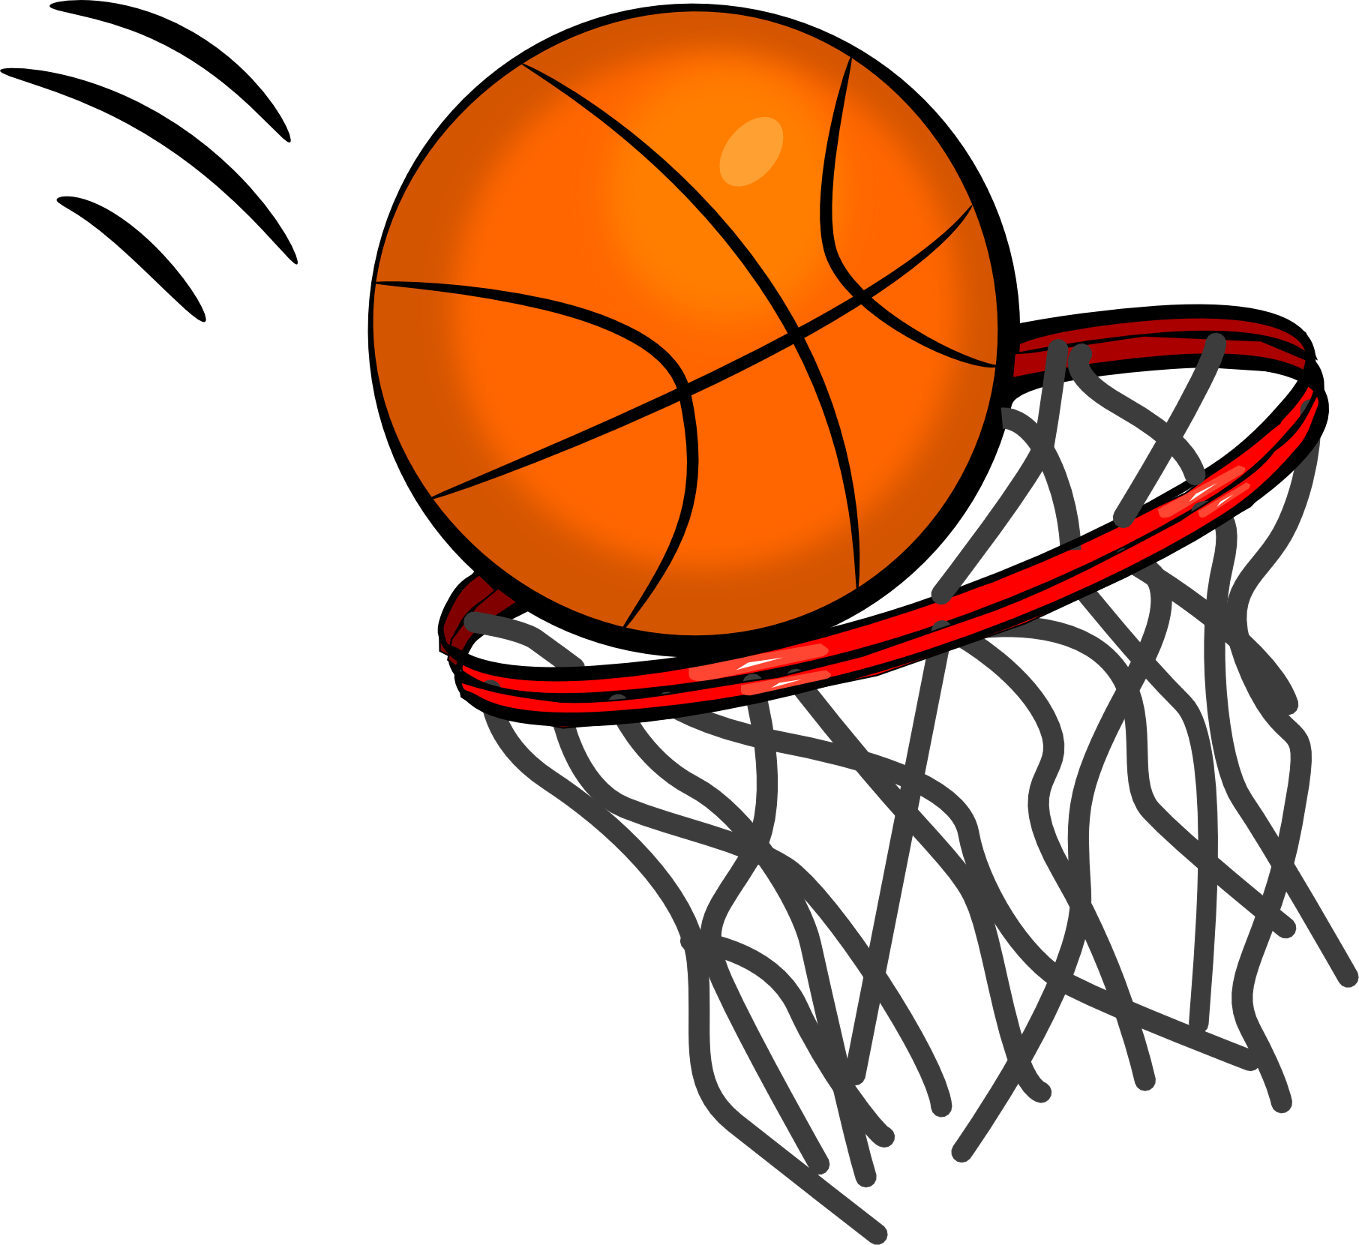 Basketball grey lines clipart